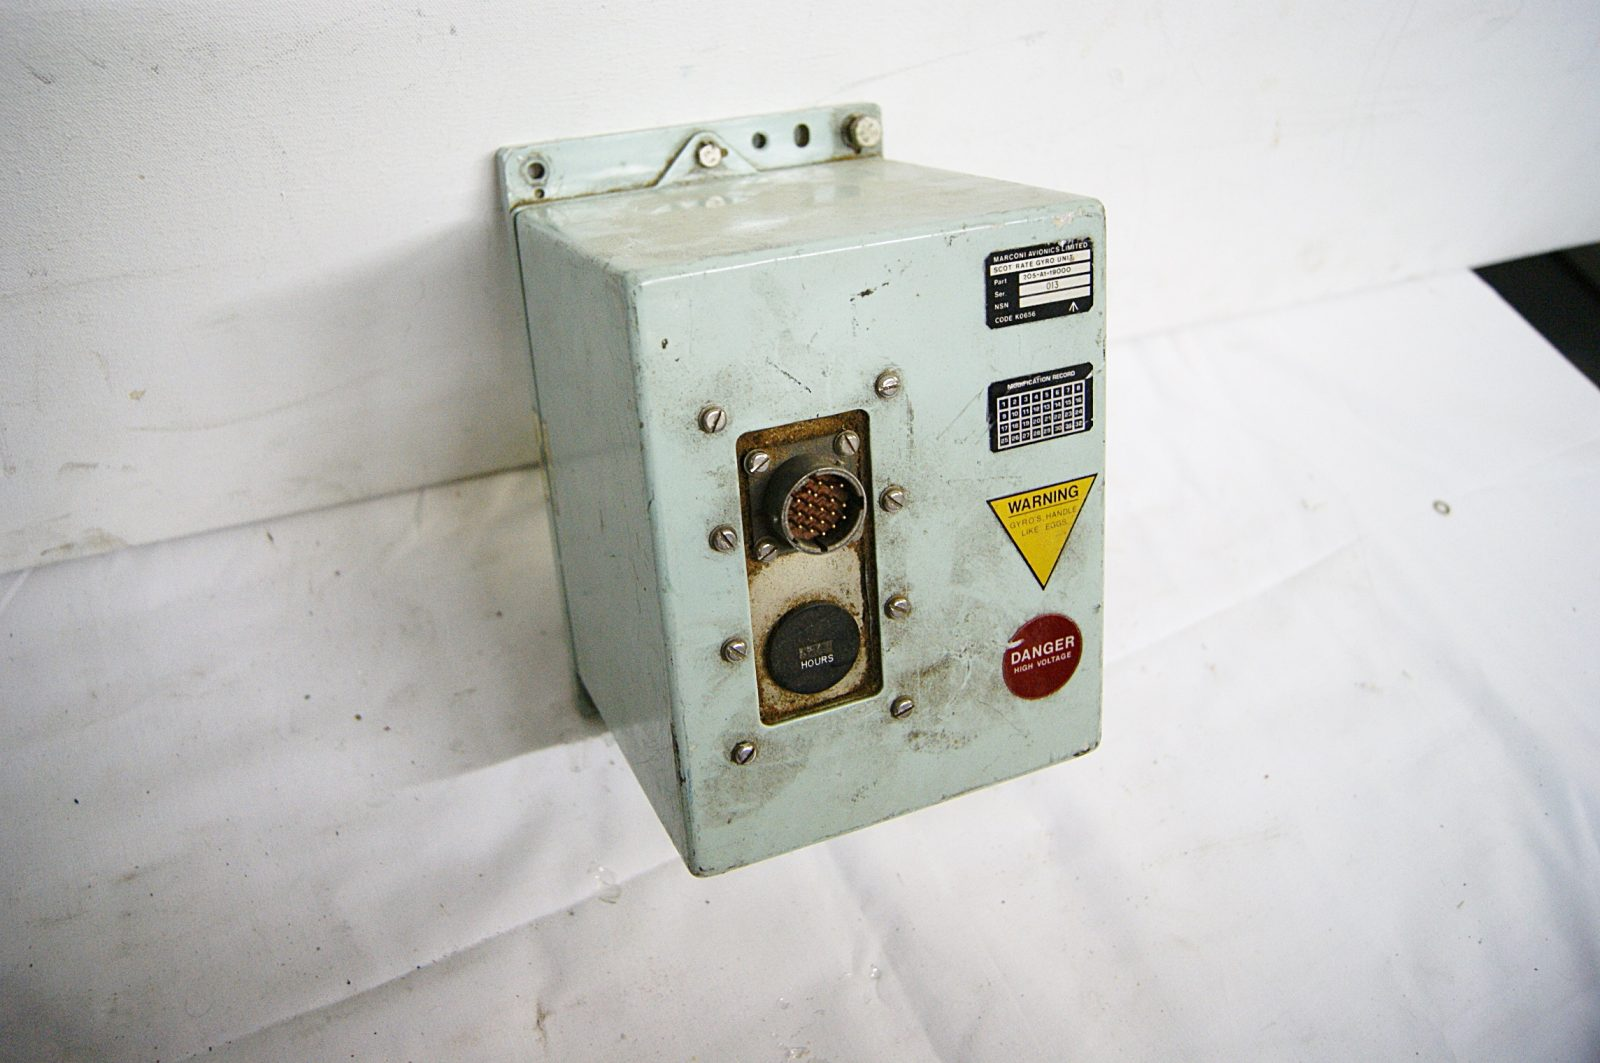 hight resolution of 6810150 submarine control room fuse box h 20cm x 13 x 14 stockyard prop and backdrop hire